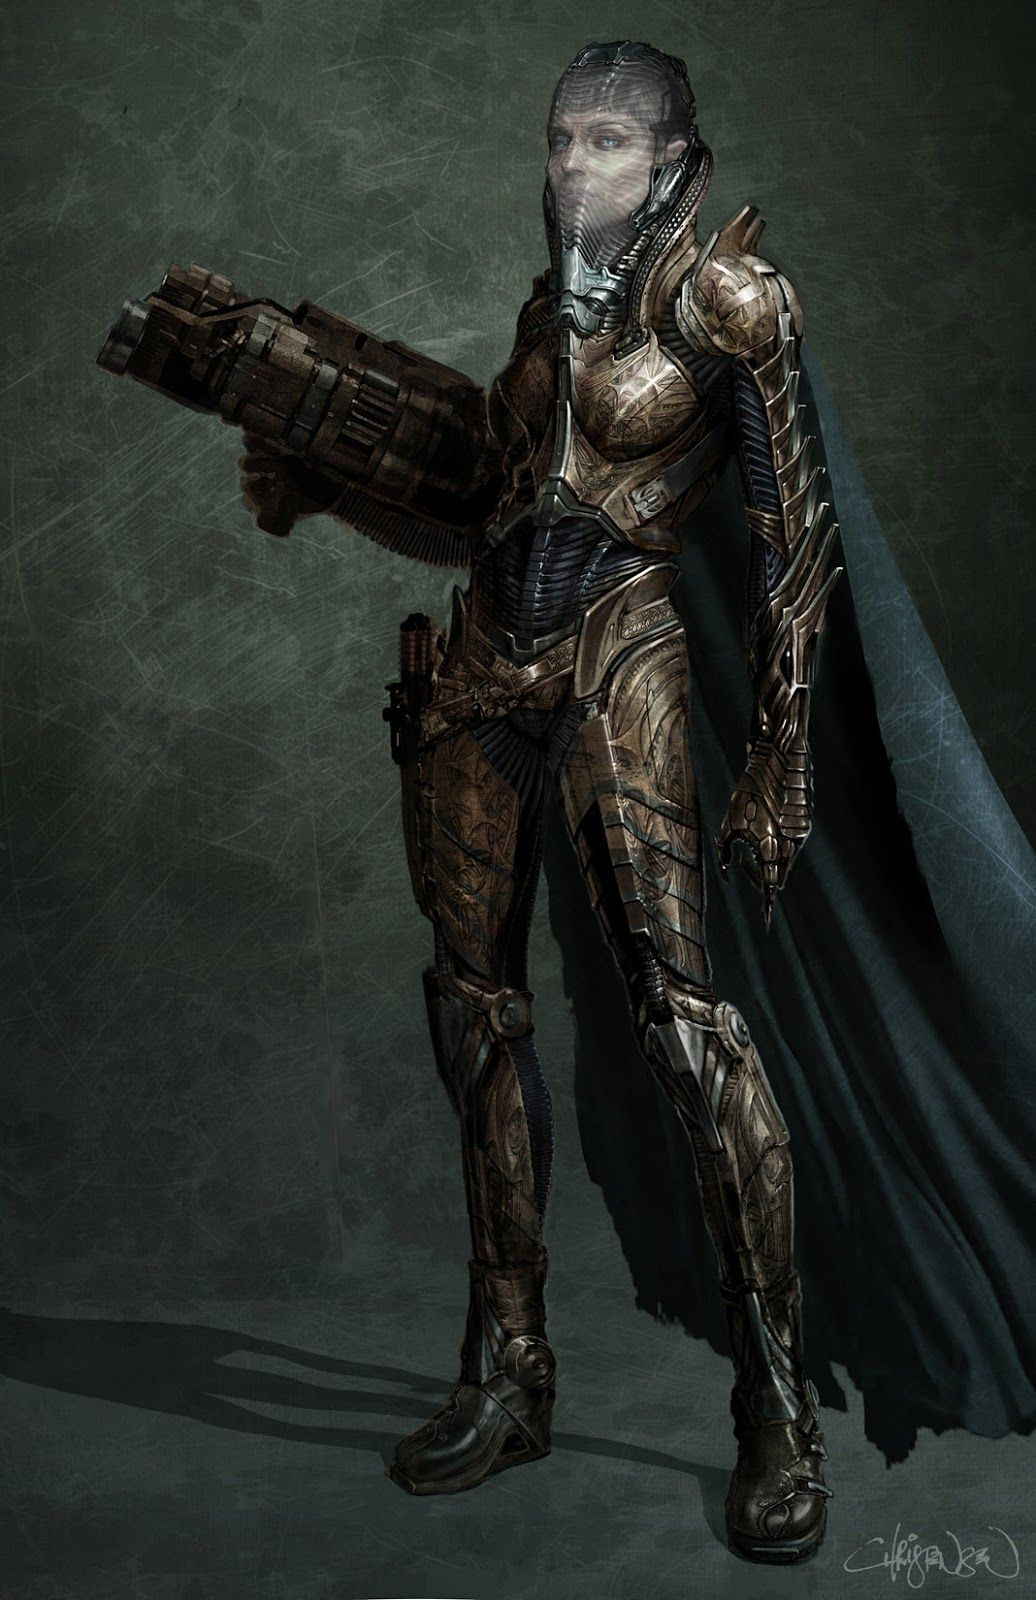 """Costume illustration for """"Faora-Ul"""" (Antje Traue) by Keith Christensen, from 'Man of Steel' 2013. Costume design by James Acheson and Michael Wilkinson."""